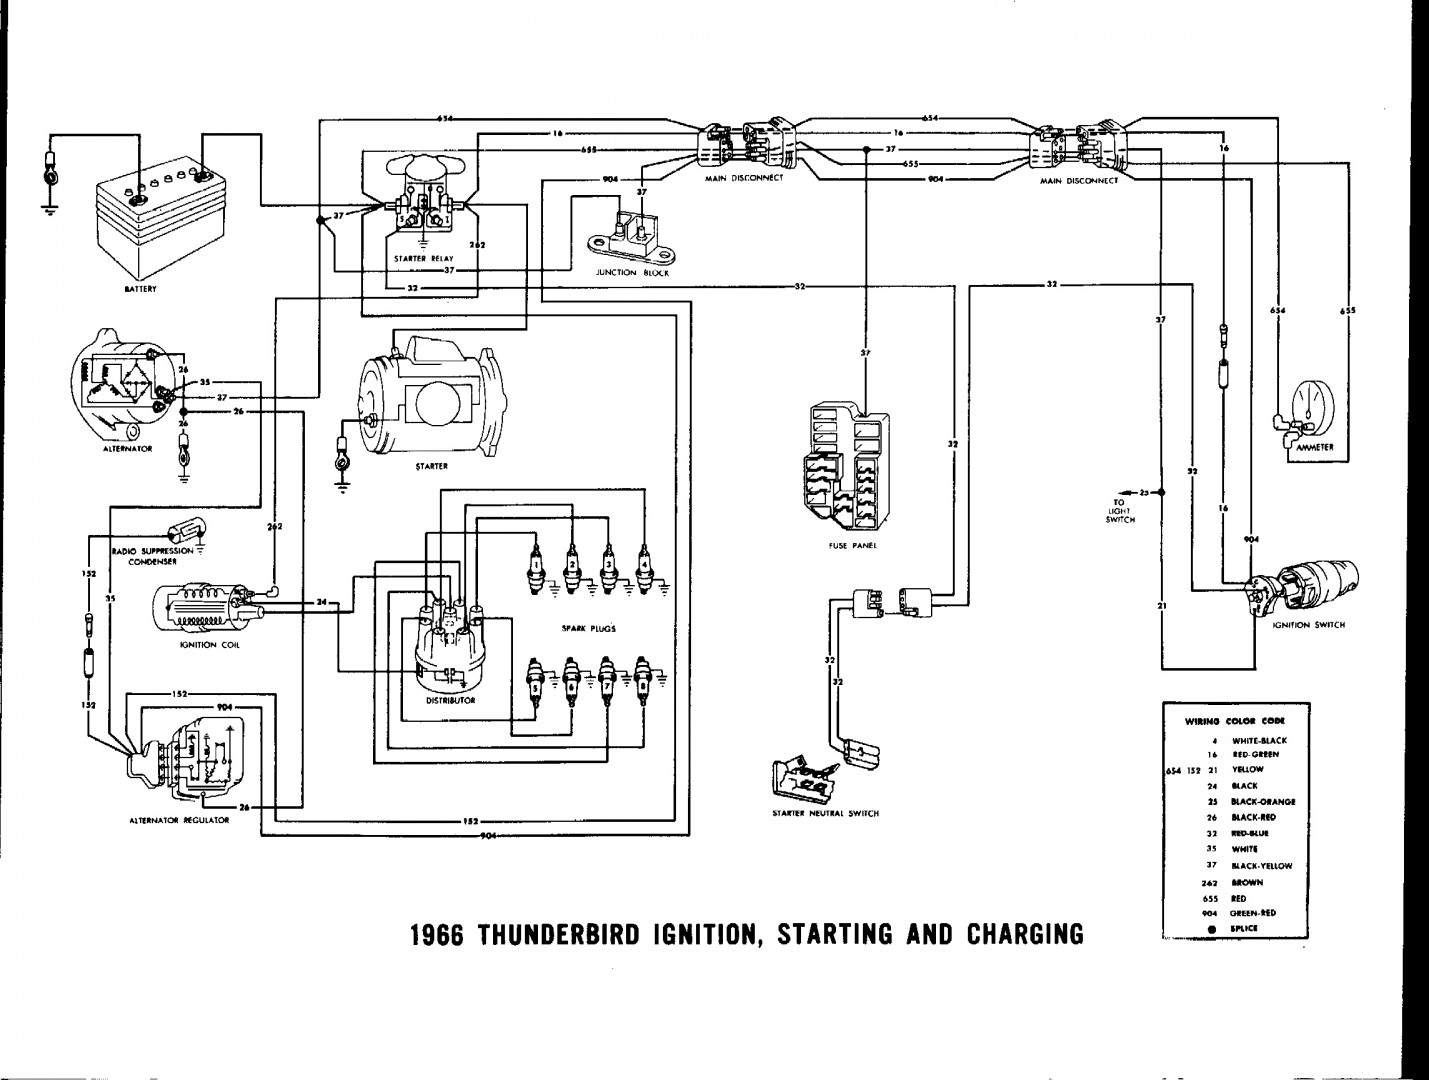 1966 Thunderbird iginition diagram ford thunderbird shop manuals 1965 Thunderbird Window Regulator at virtualis.co